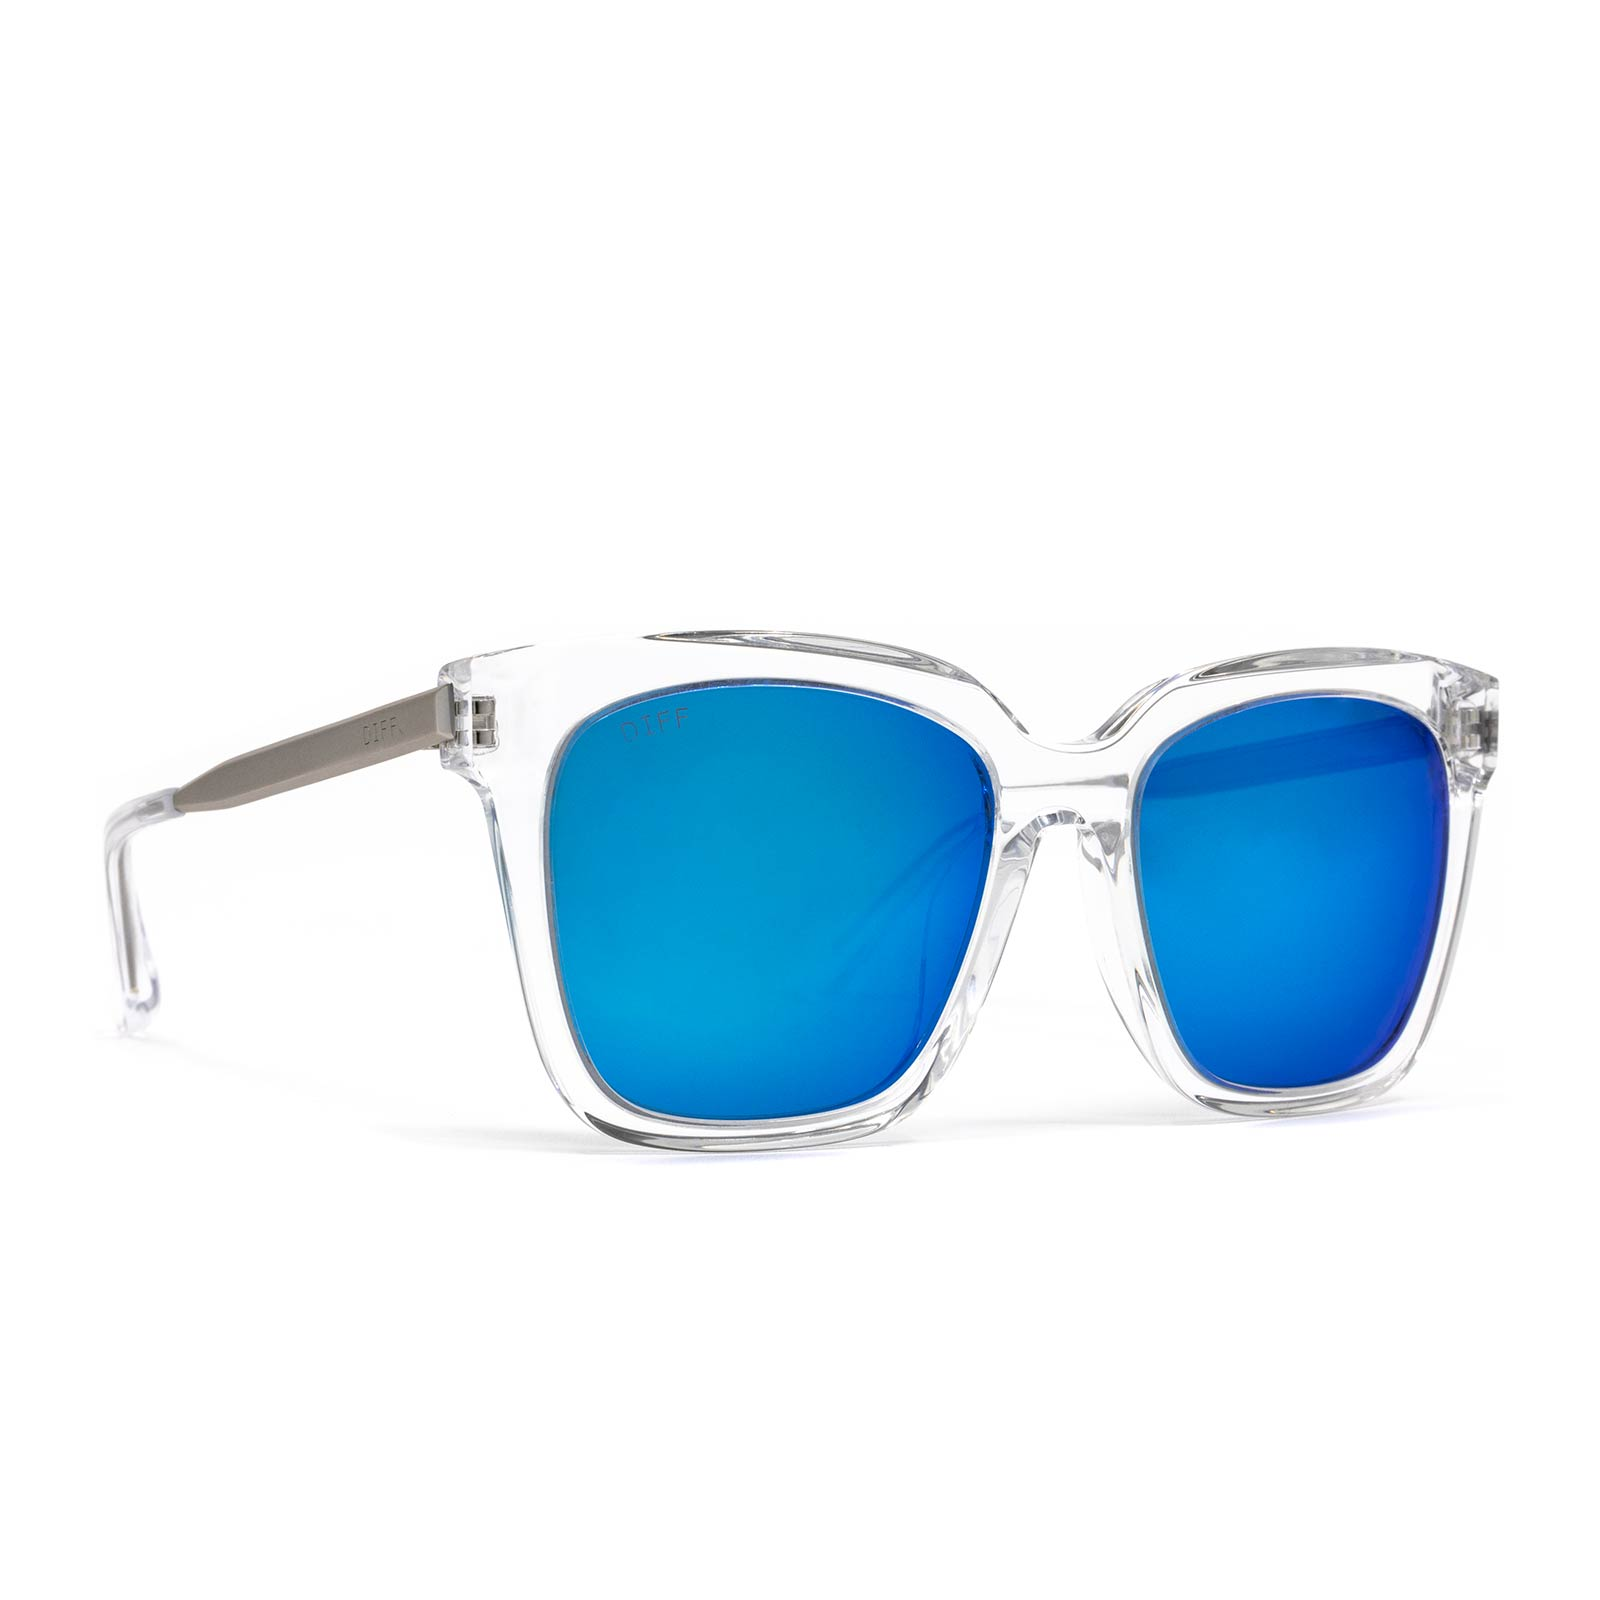 Bella sunglasses with clear frame and blue mirror lens- angle view